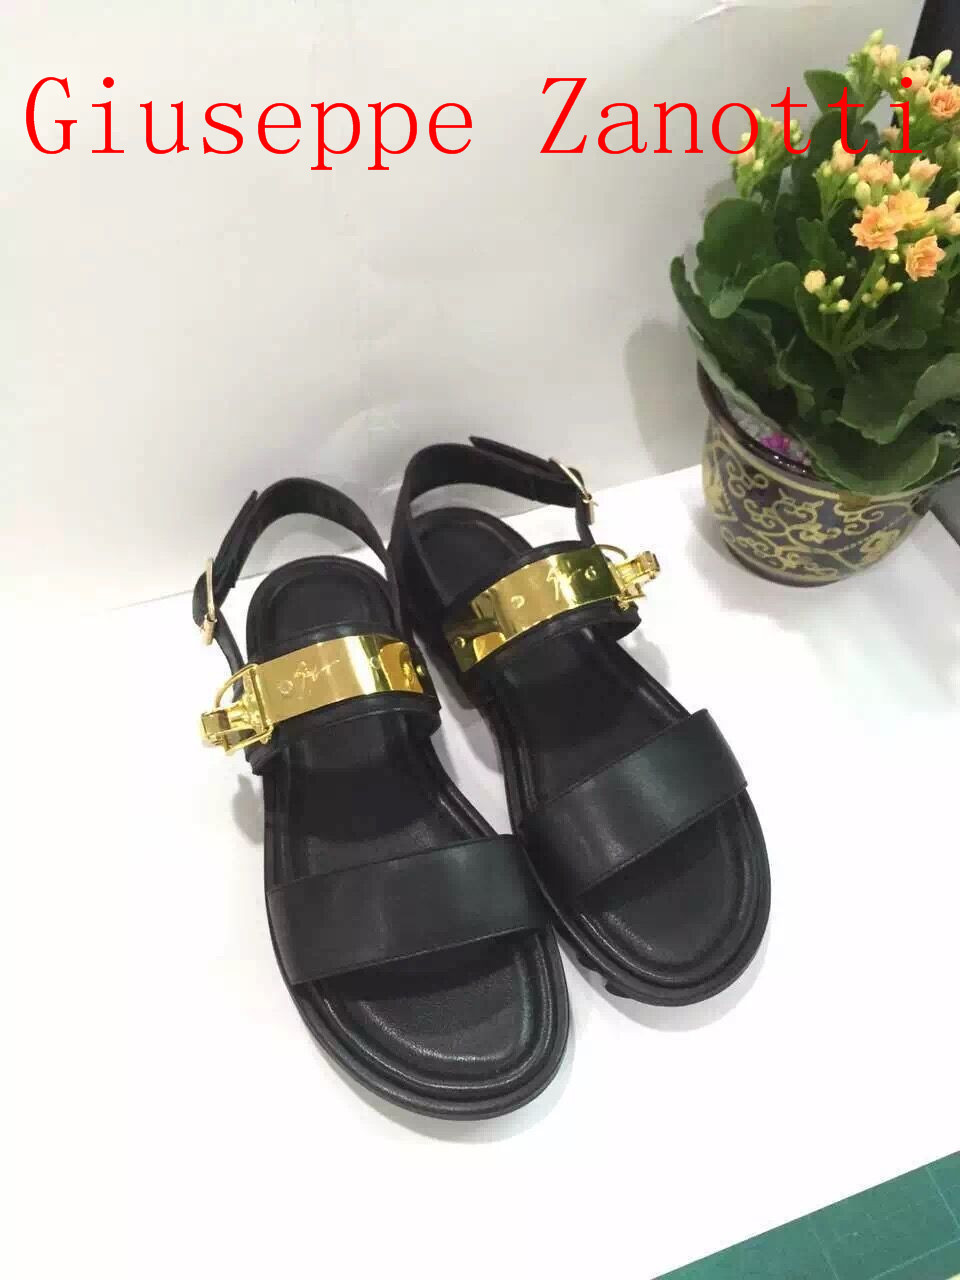 049a167e0dd4 Summer shoes The man s sandals buscemi -in Women s Sandals from Shoes on  Aliexpress.com